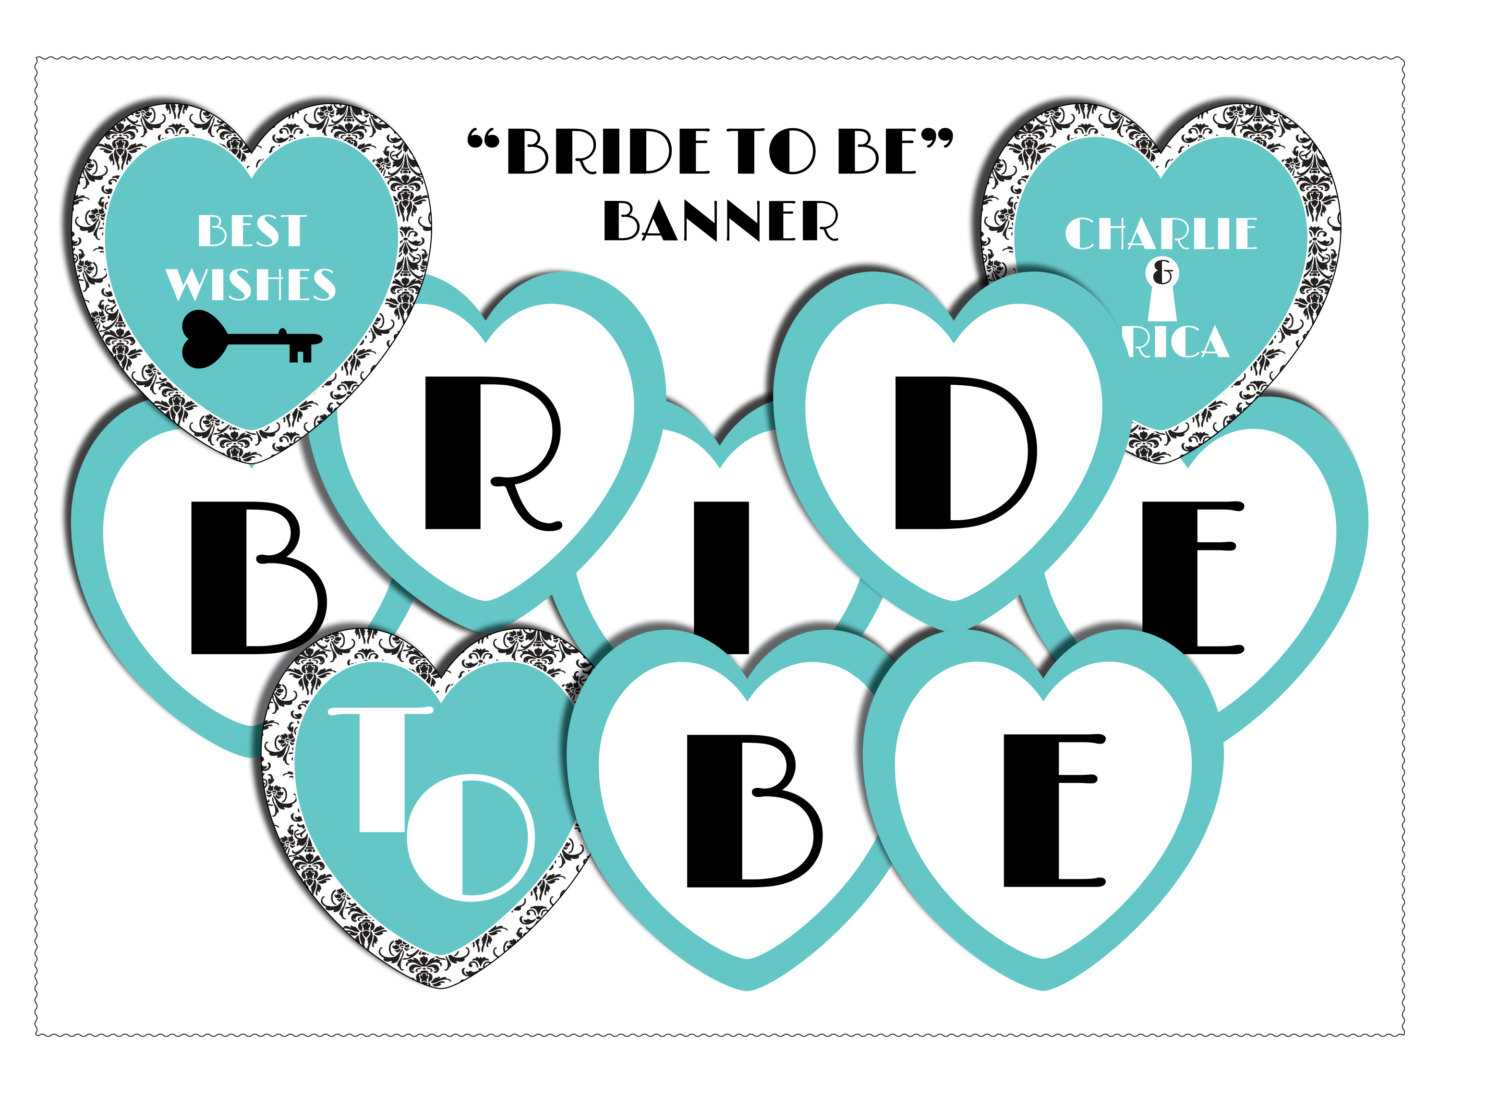 11 Best Photos Of Bride To Be Banner Template - Diy Bridal With Regard To Free Bridal Shower Banner Template